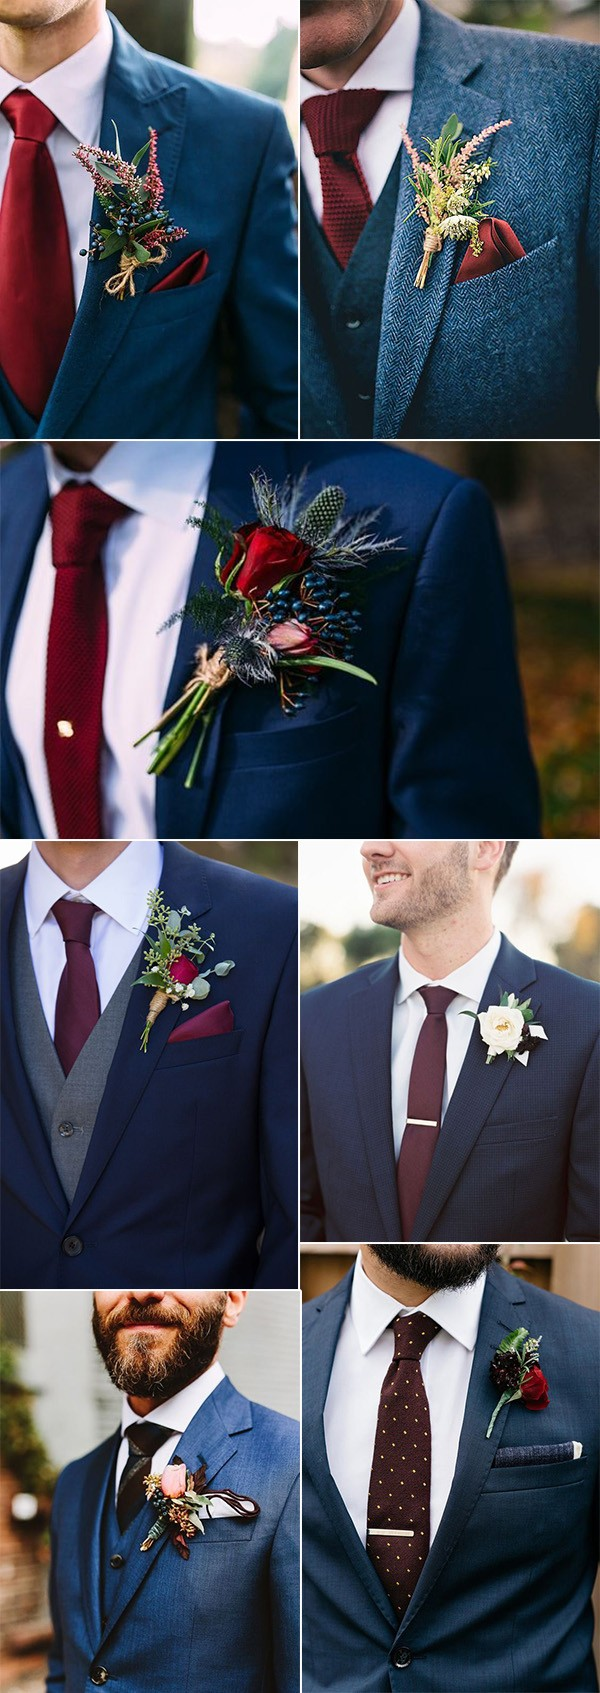 20 Trending Groom\u0027s Suit Ideas for 2019 Weddings